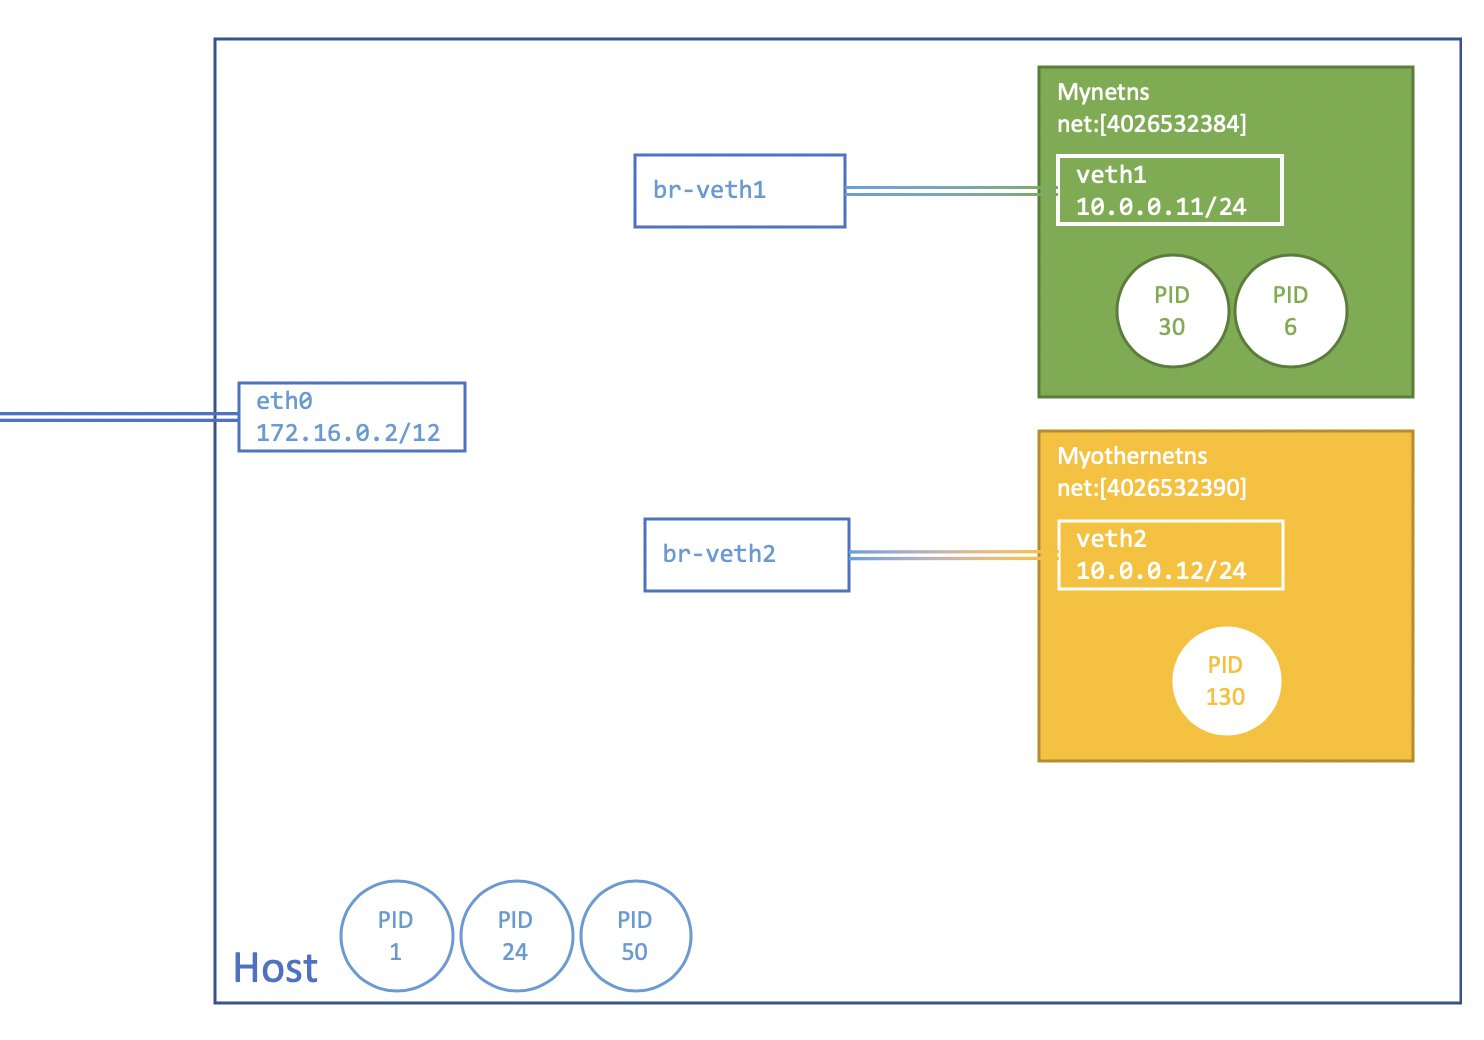 Image showing an overview of what was created. eth0, br-veth1, br-veth2 are part of the initial namespace, while veth1 and veth2 are part of their own separate network namespaces.